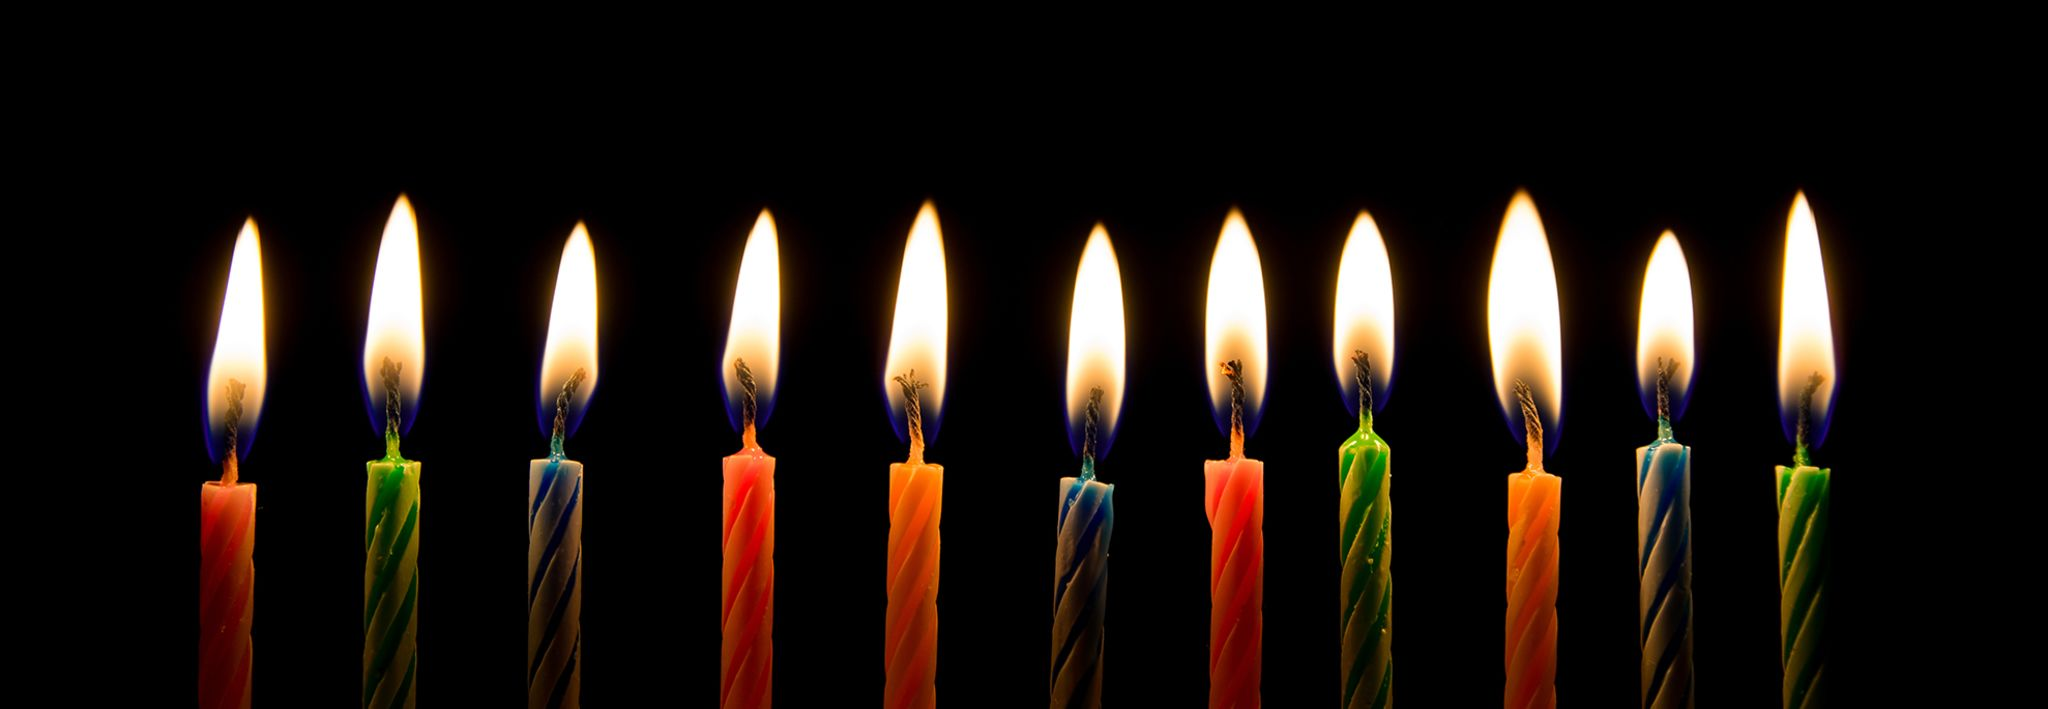 Eleven birthday candles in a row.